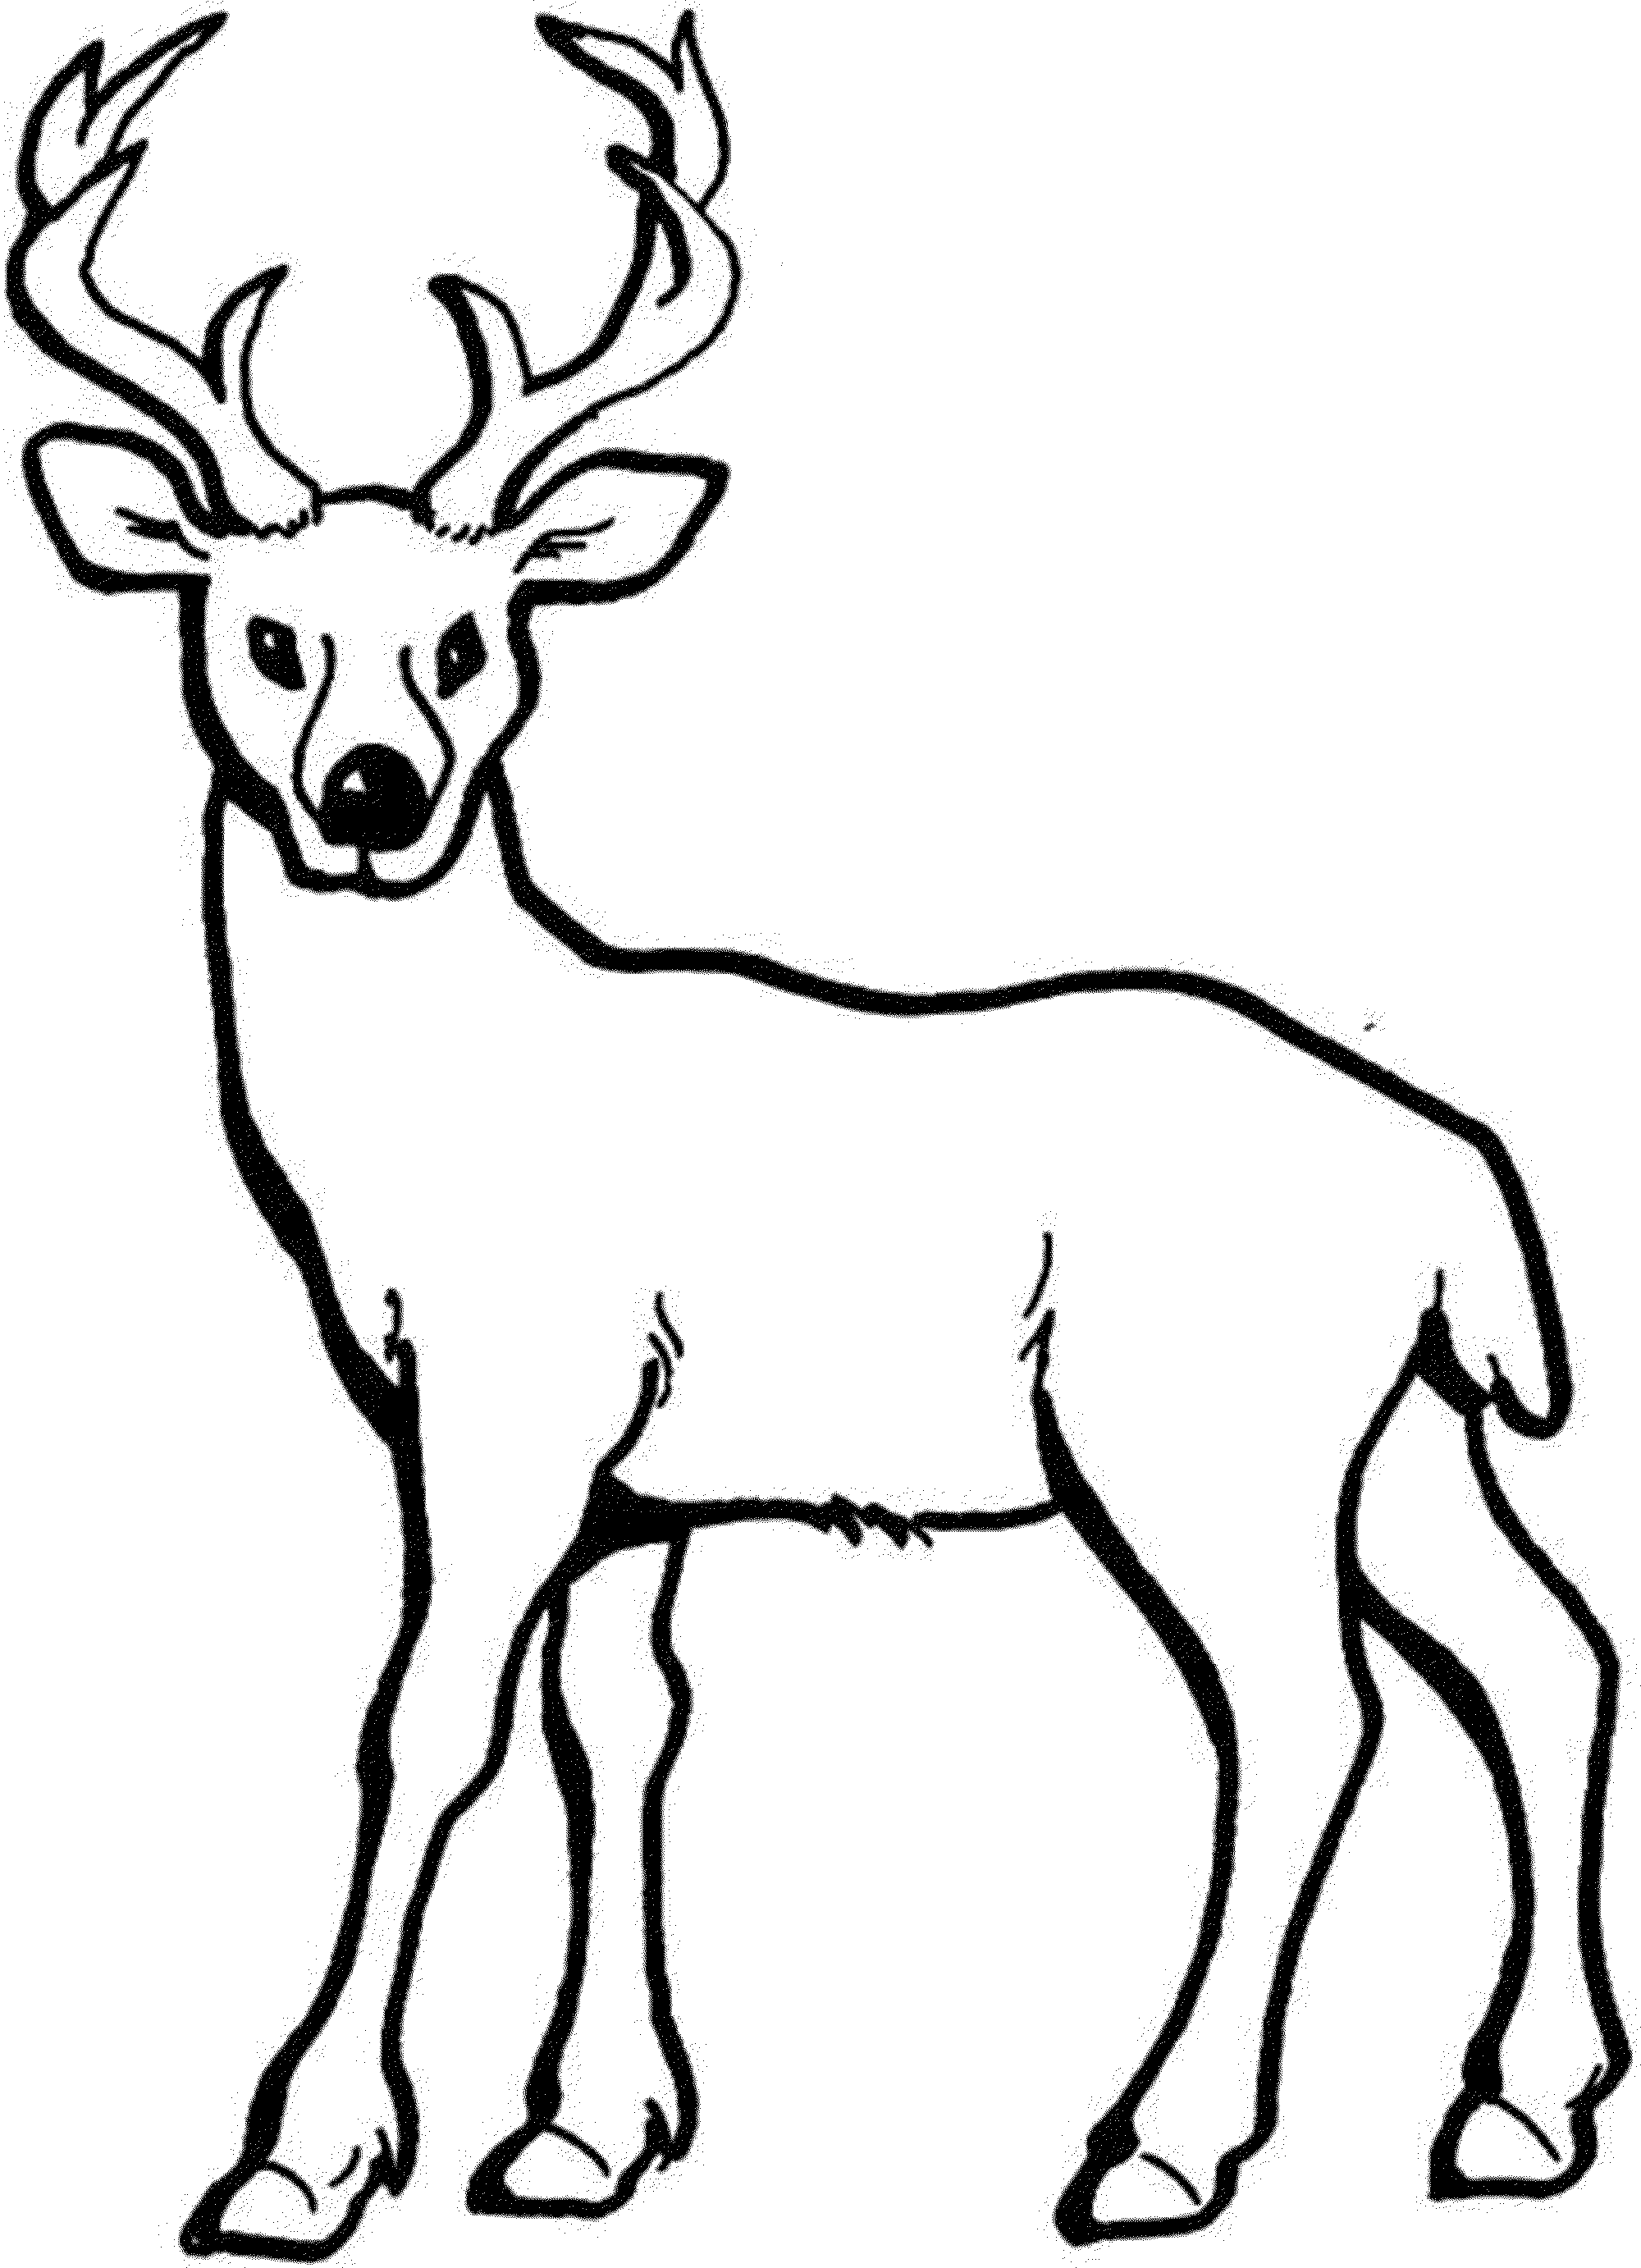 Buck clipart drawing. At getdrawings com free